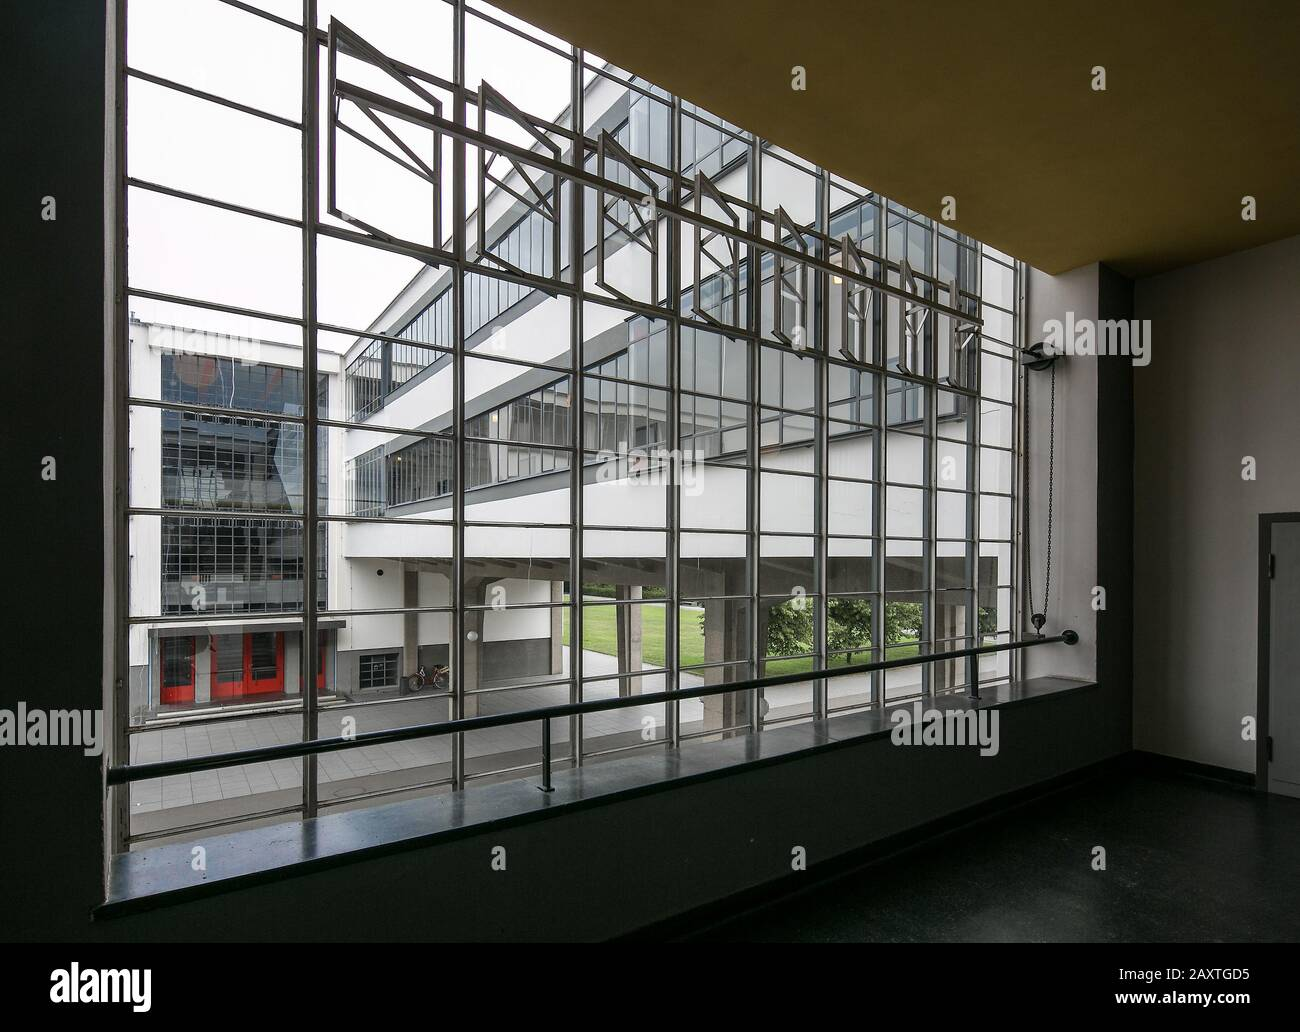 Fenster Bauhaus Bauhaus Art Academy High Resolution Stock Photography And Images - Alamy